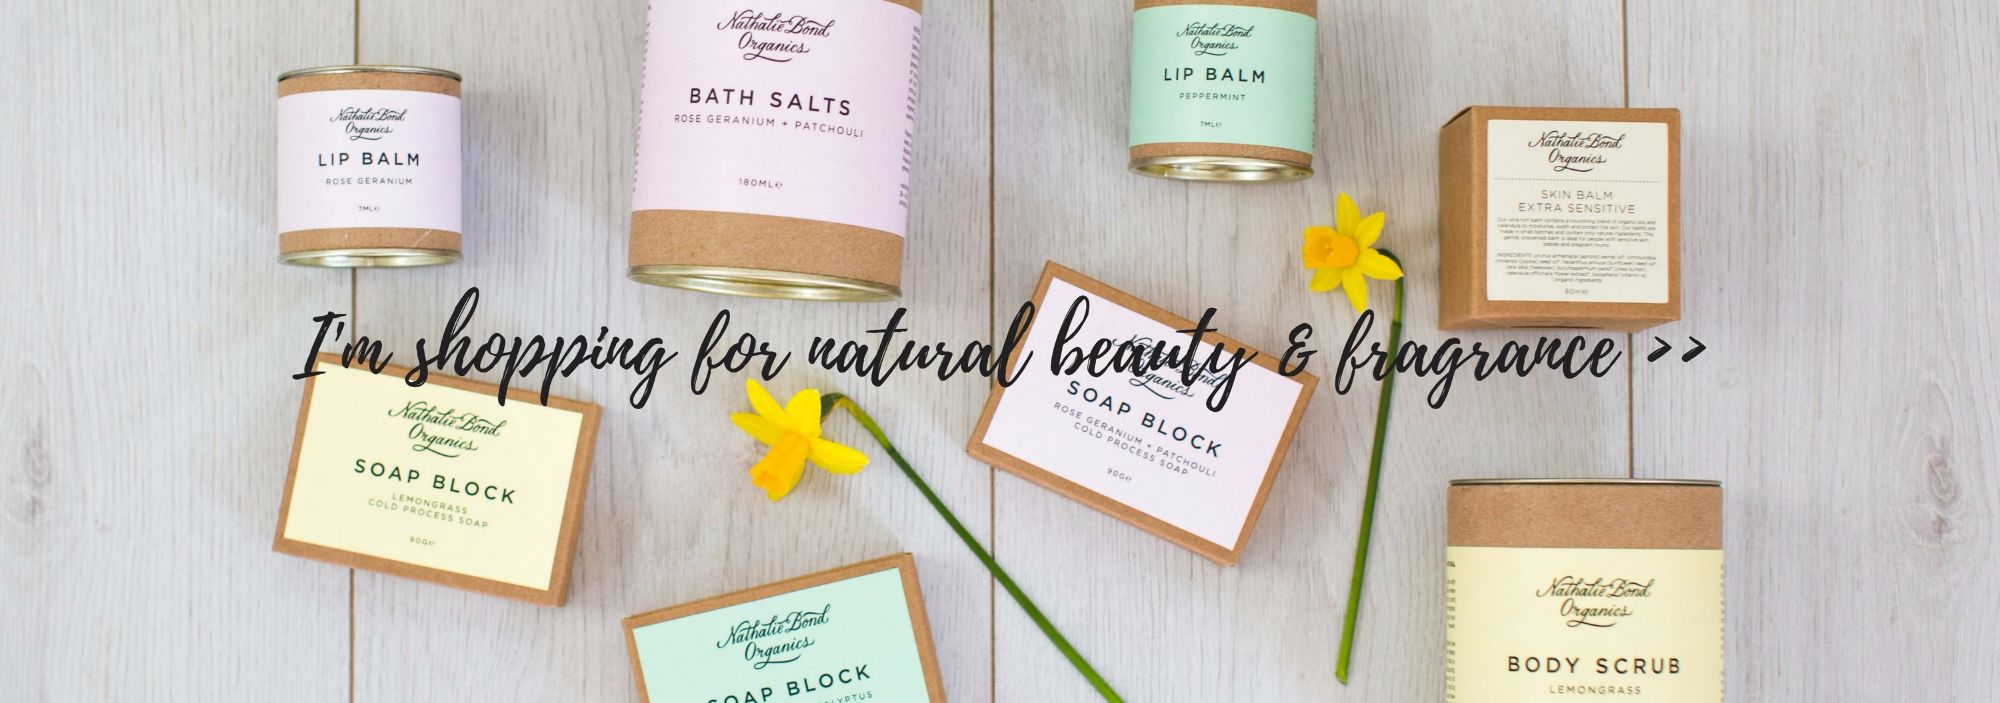 Nathalie Bond Organic Beauty Products